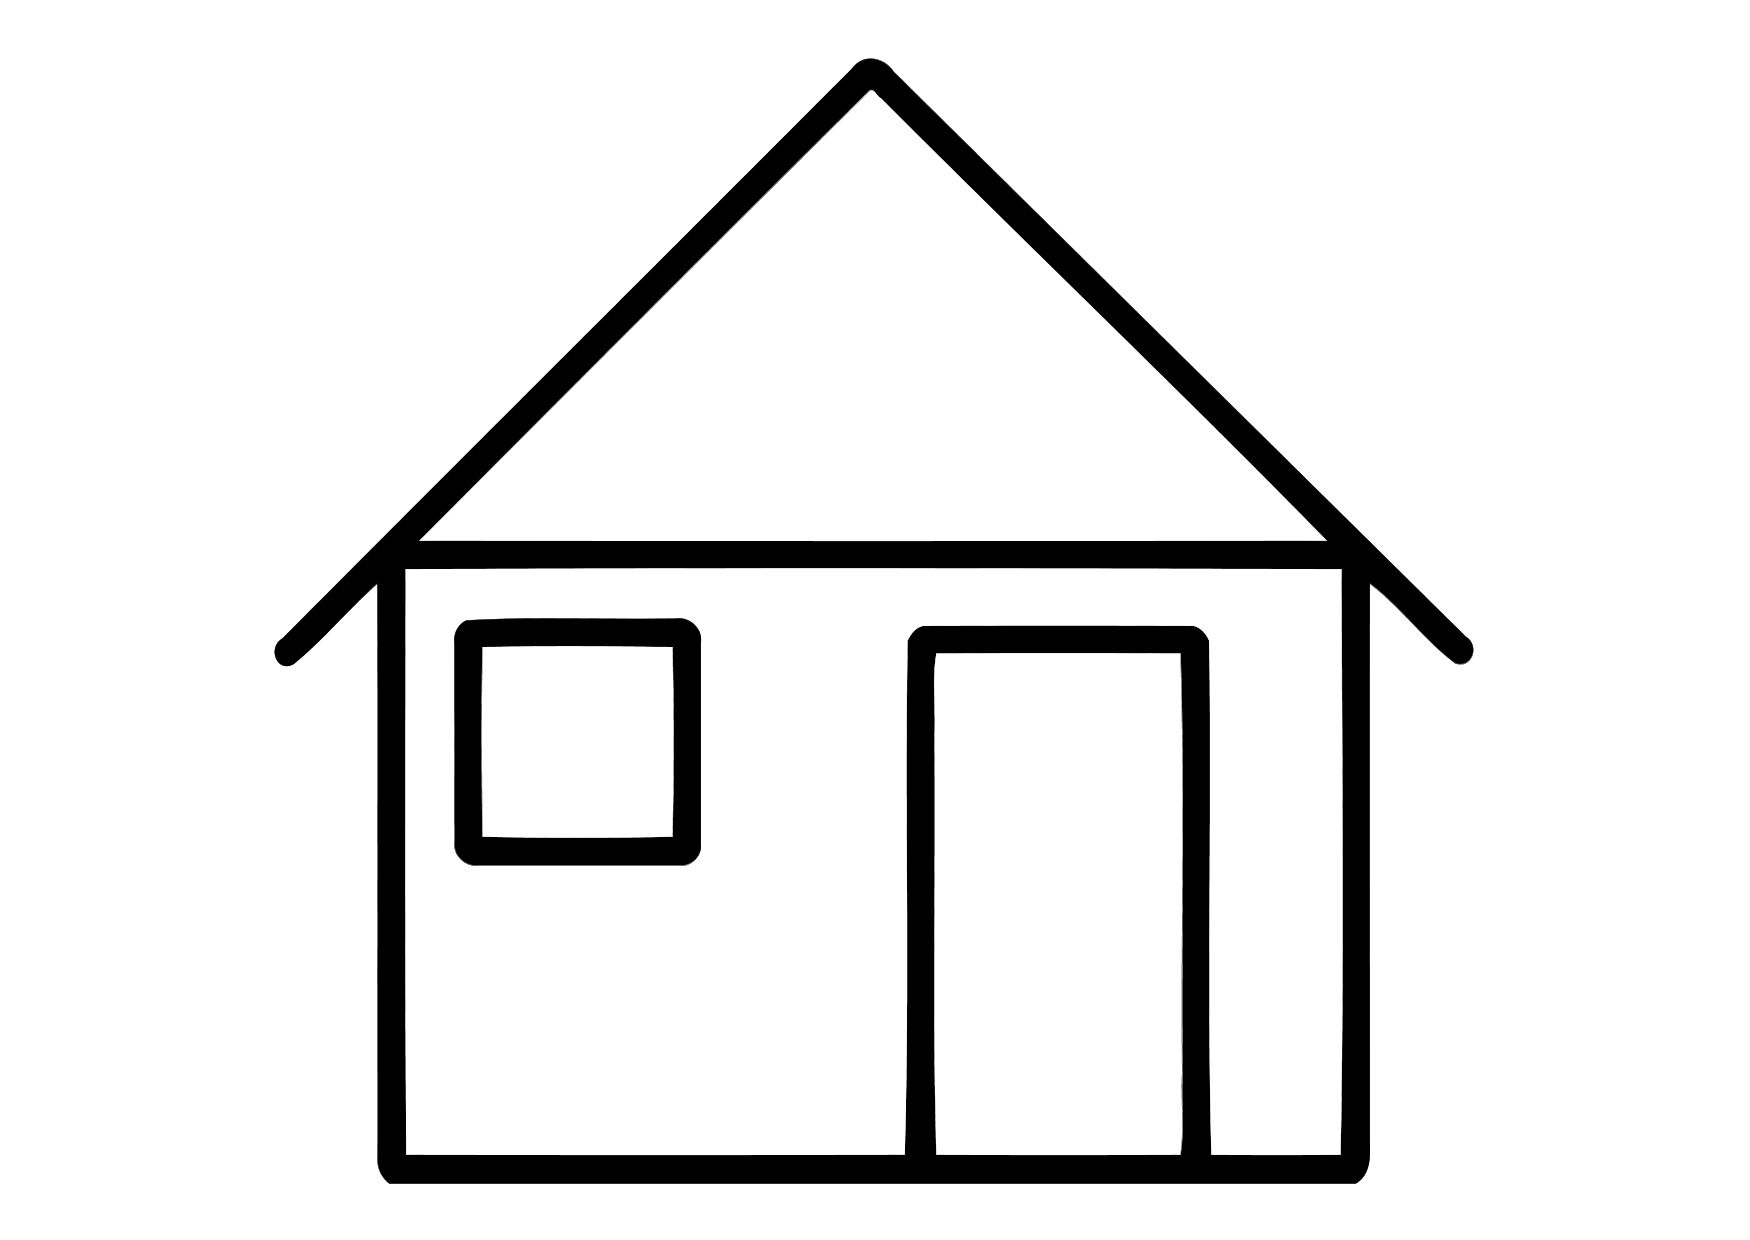 pictures of houses to color victorian house coloring page free printable coloring pages of houses to pictures color